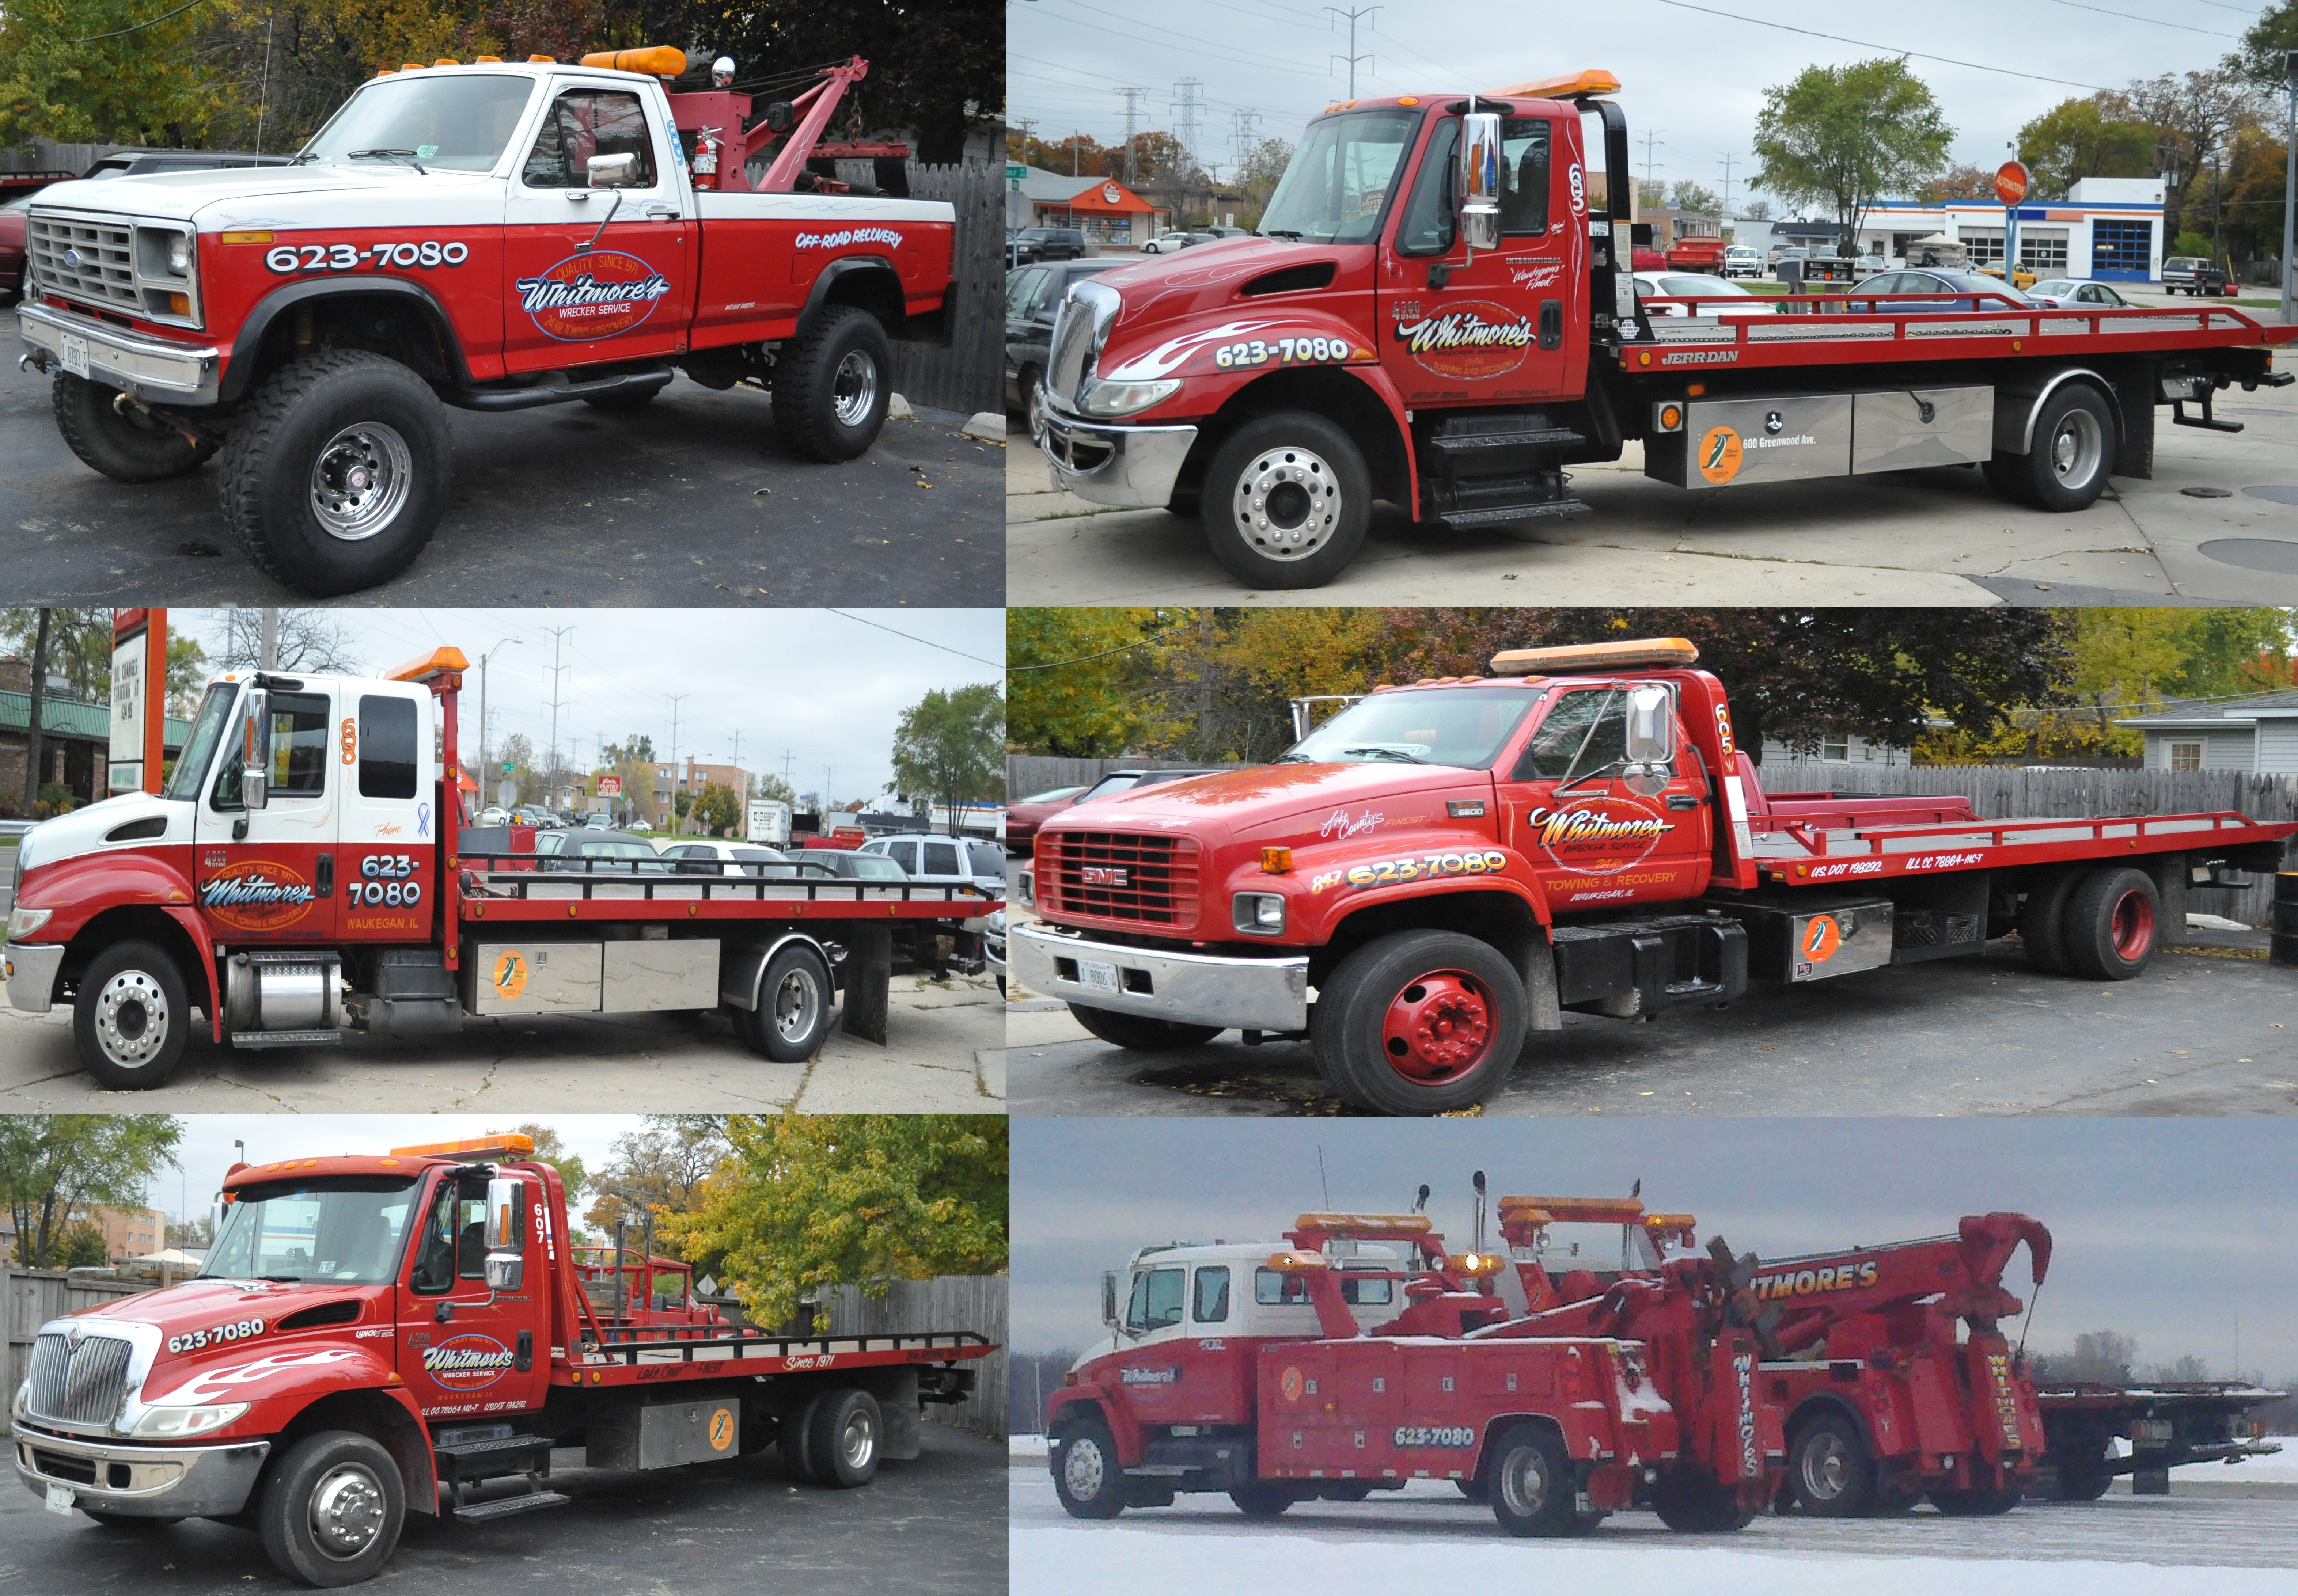 Whitmores Auto Service Semi truck truck towing Waukegan Gurnee Best Tow Company